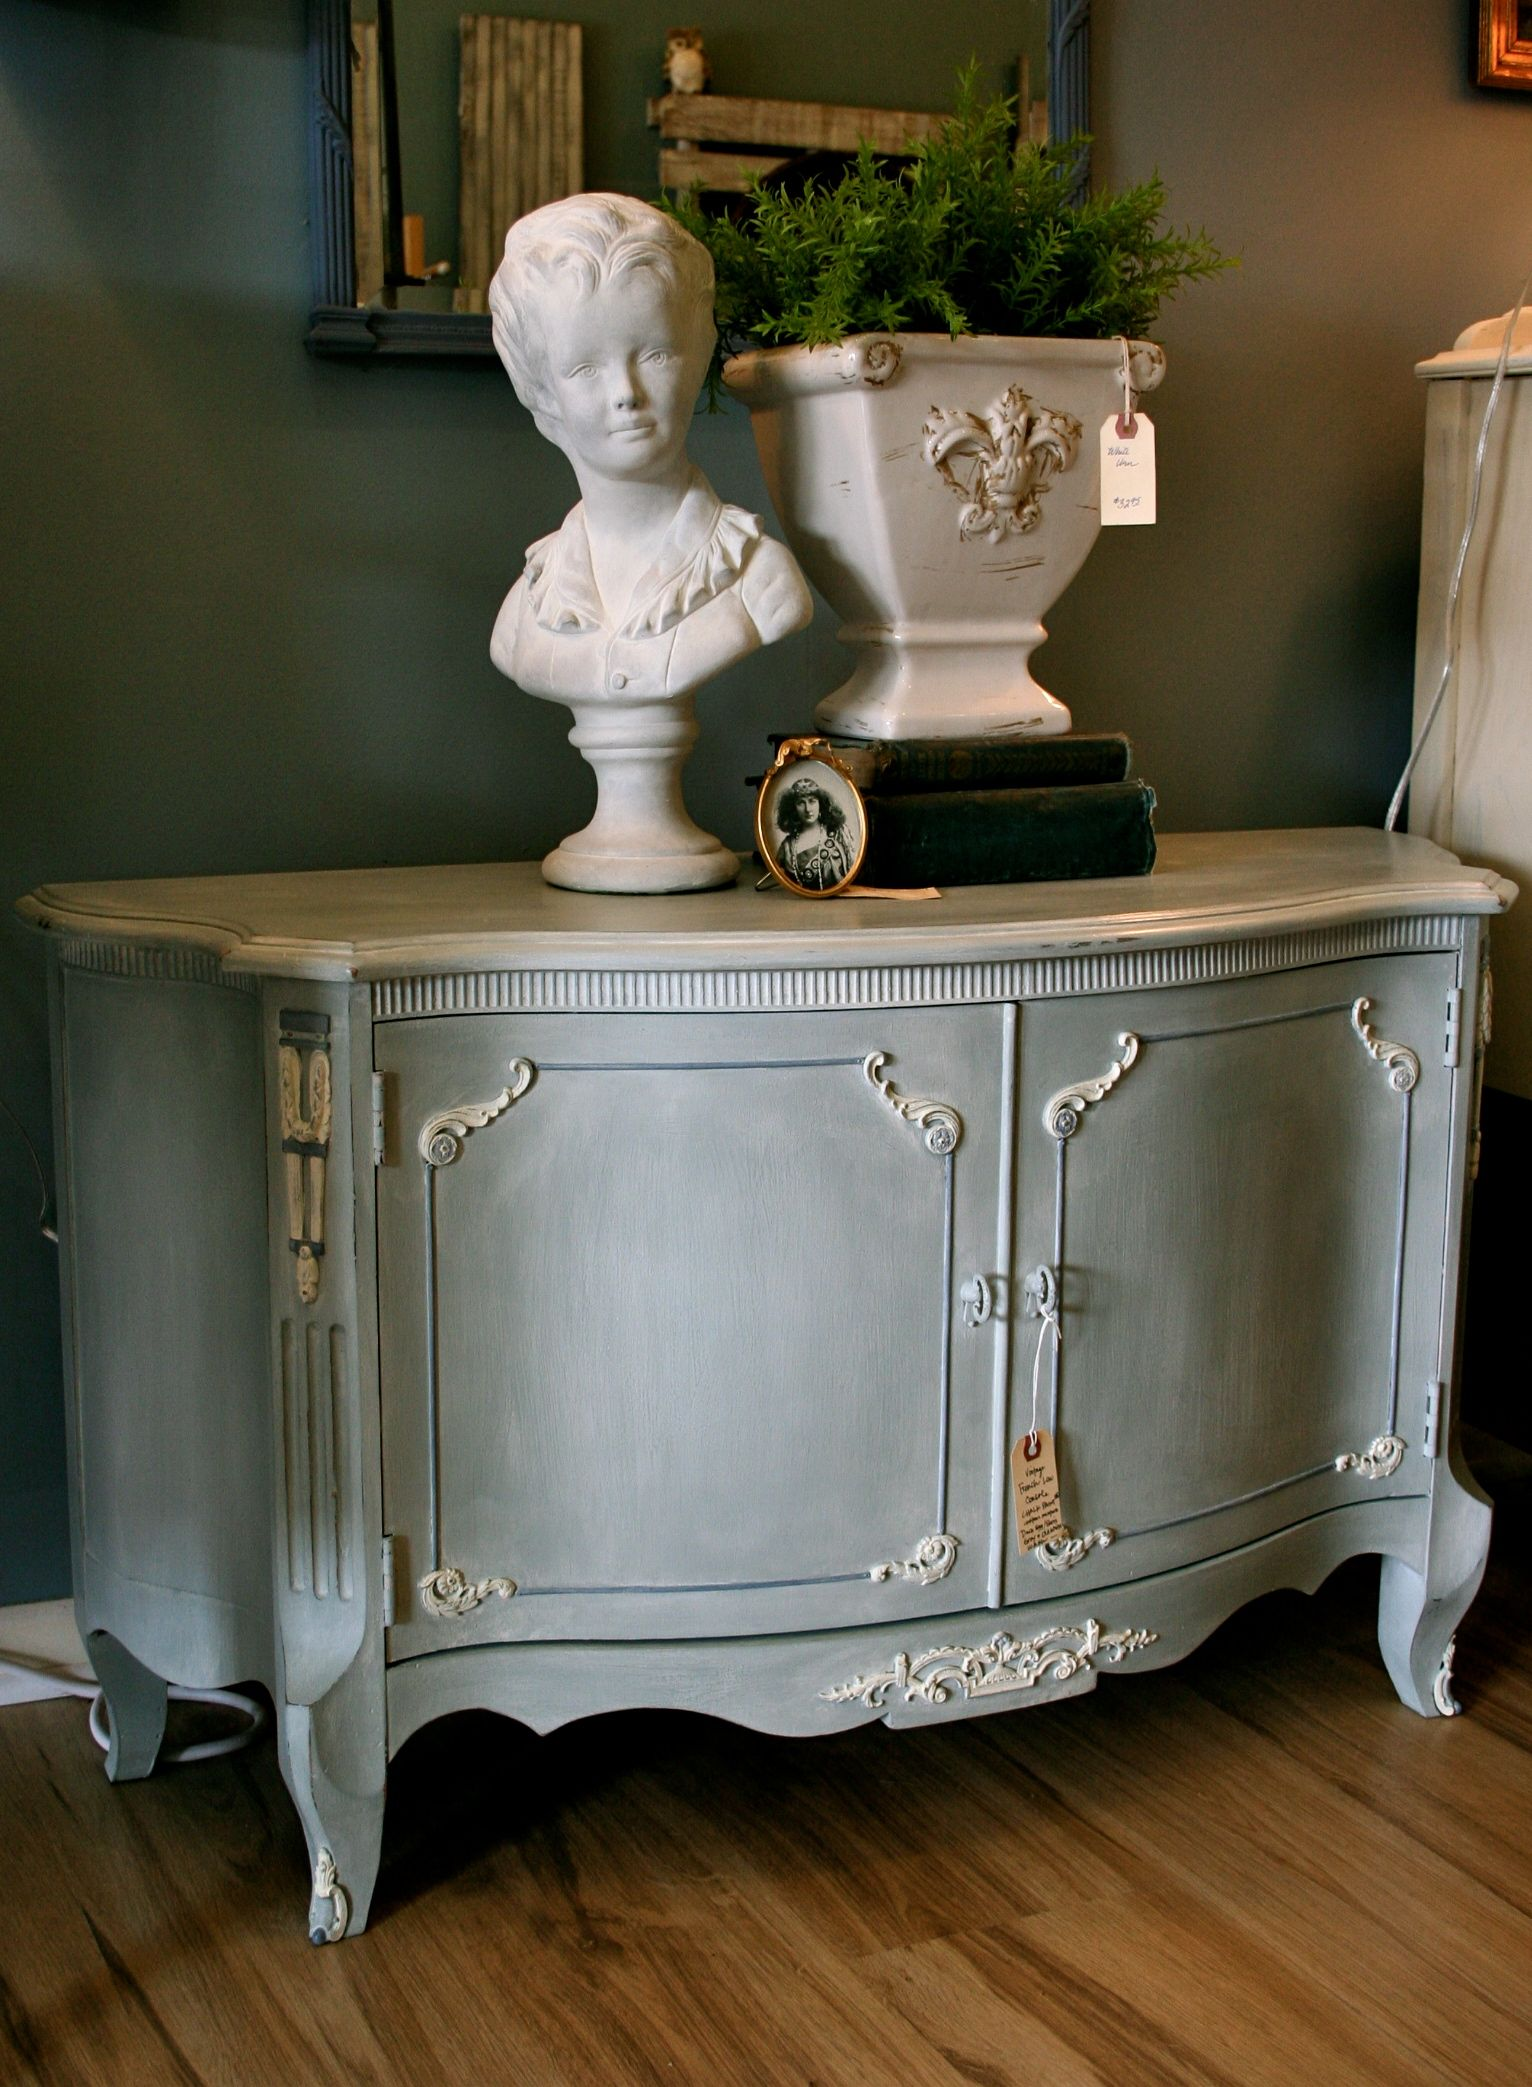 Vintage low console table in a mixture of Chalk Paint® Duck Egg & Paris Grey with Chalk Paint® Old Violet accents and an Old White wash.